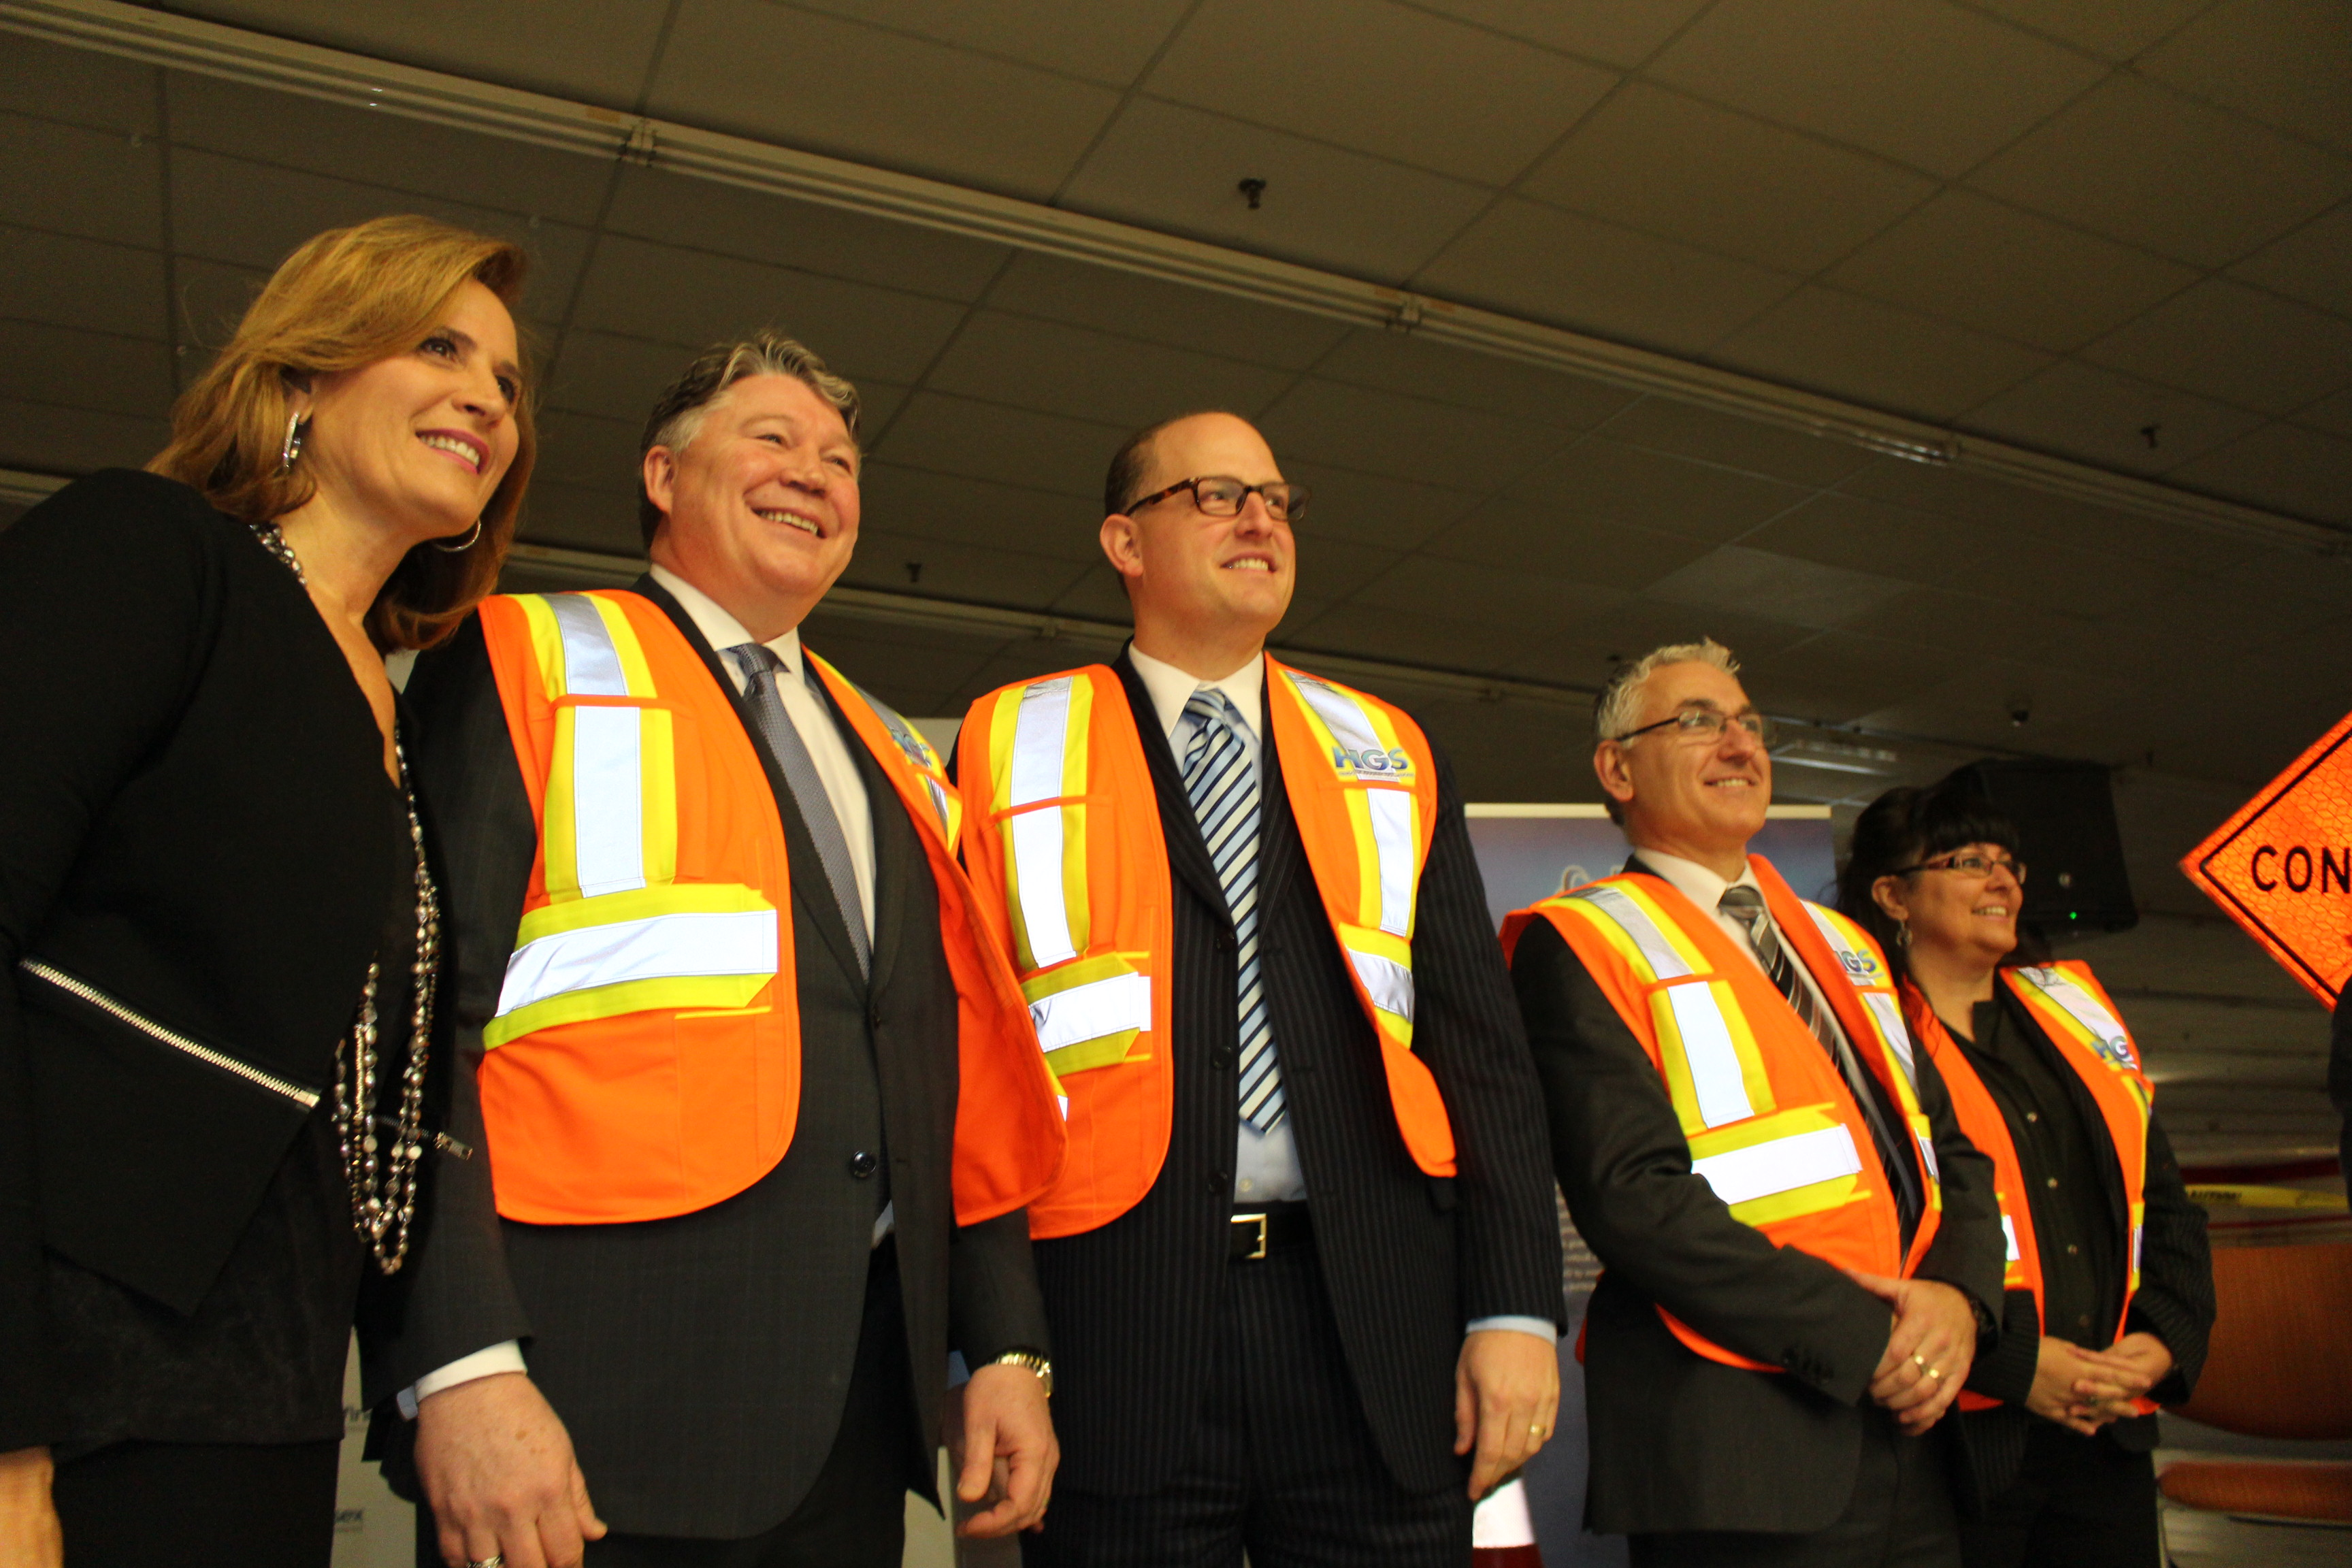 WEEDC CEO Sandra Pupatello, HGS Canada President Ross Beattie and WIndsor Mayor Drew Dilkens at HGS Announcement, January 15 2015. (Photo by Adelle Loiselle.)